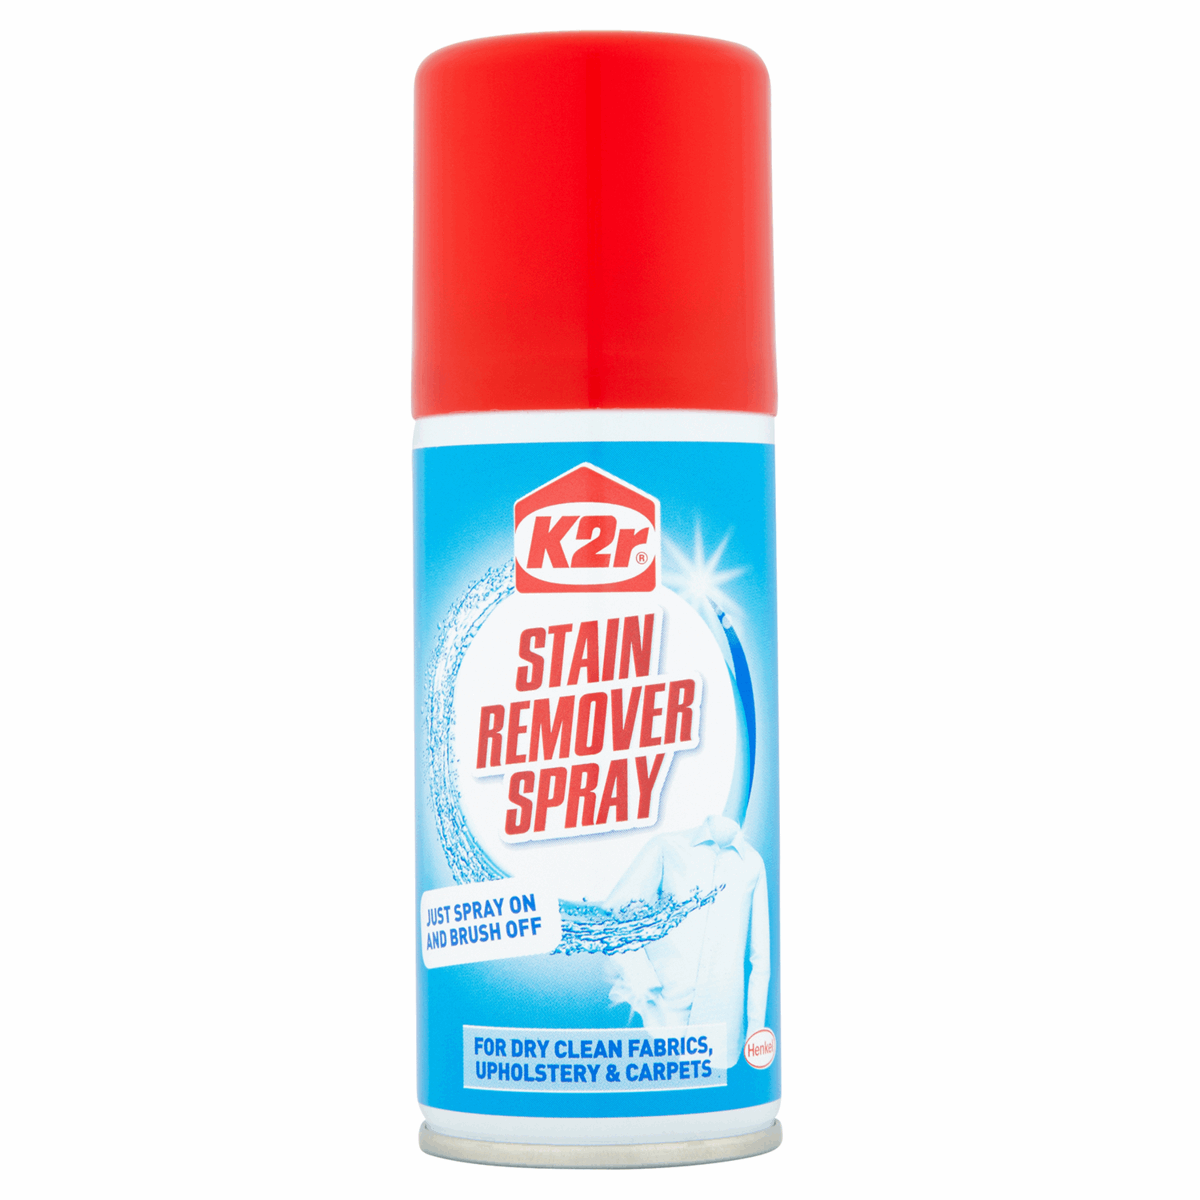 Picture of K2R Stain Remover Spray: 6 x 100ml